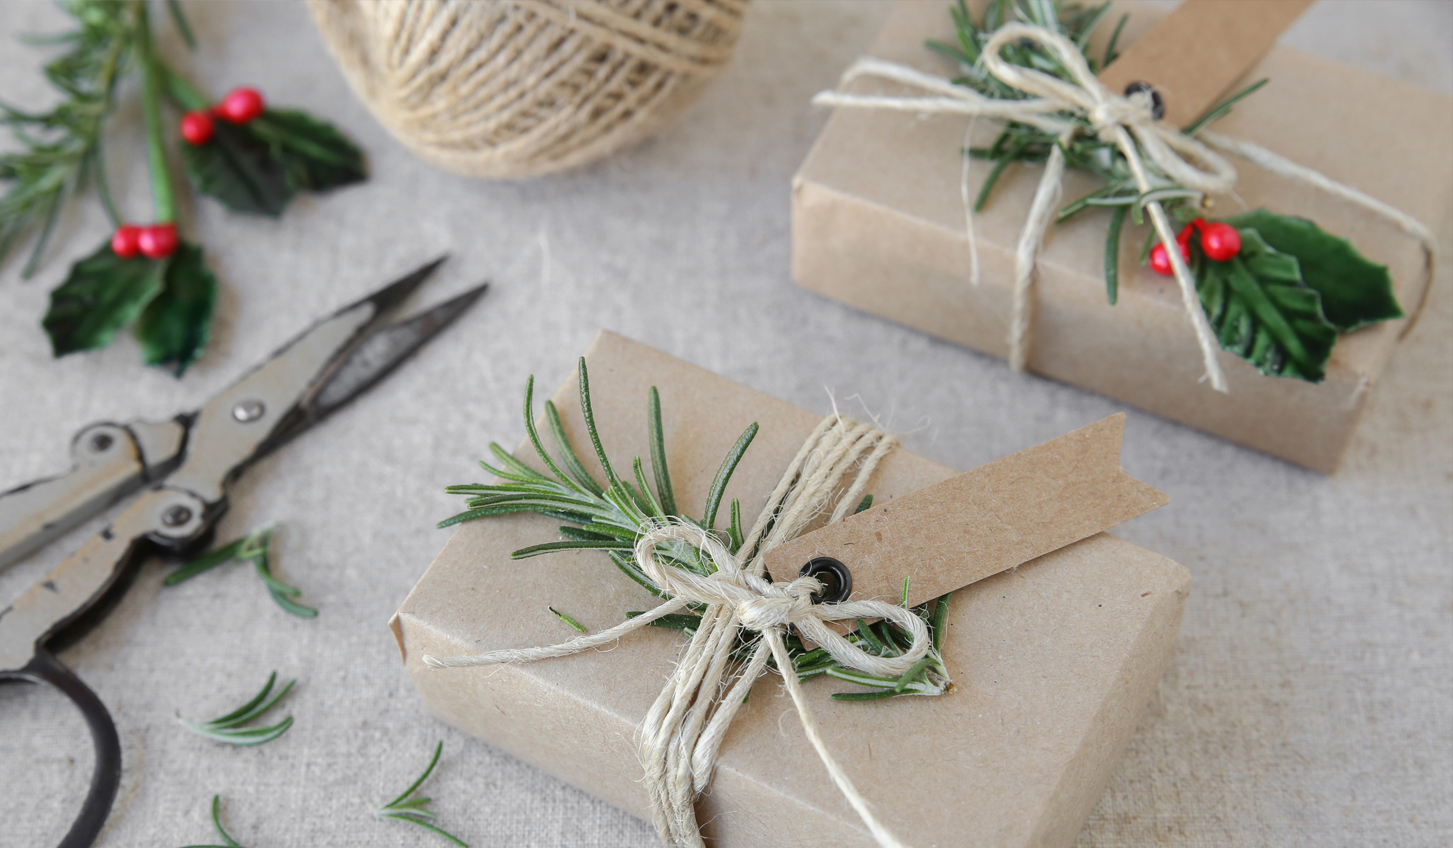 Put the wow in eco-friendly wrapping